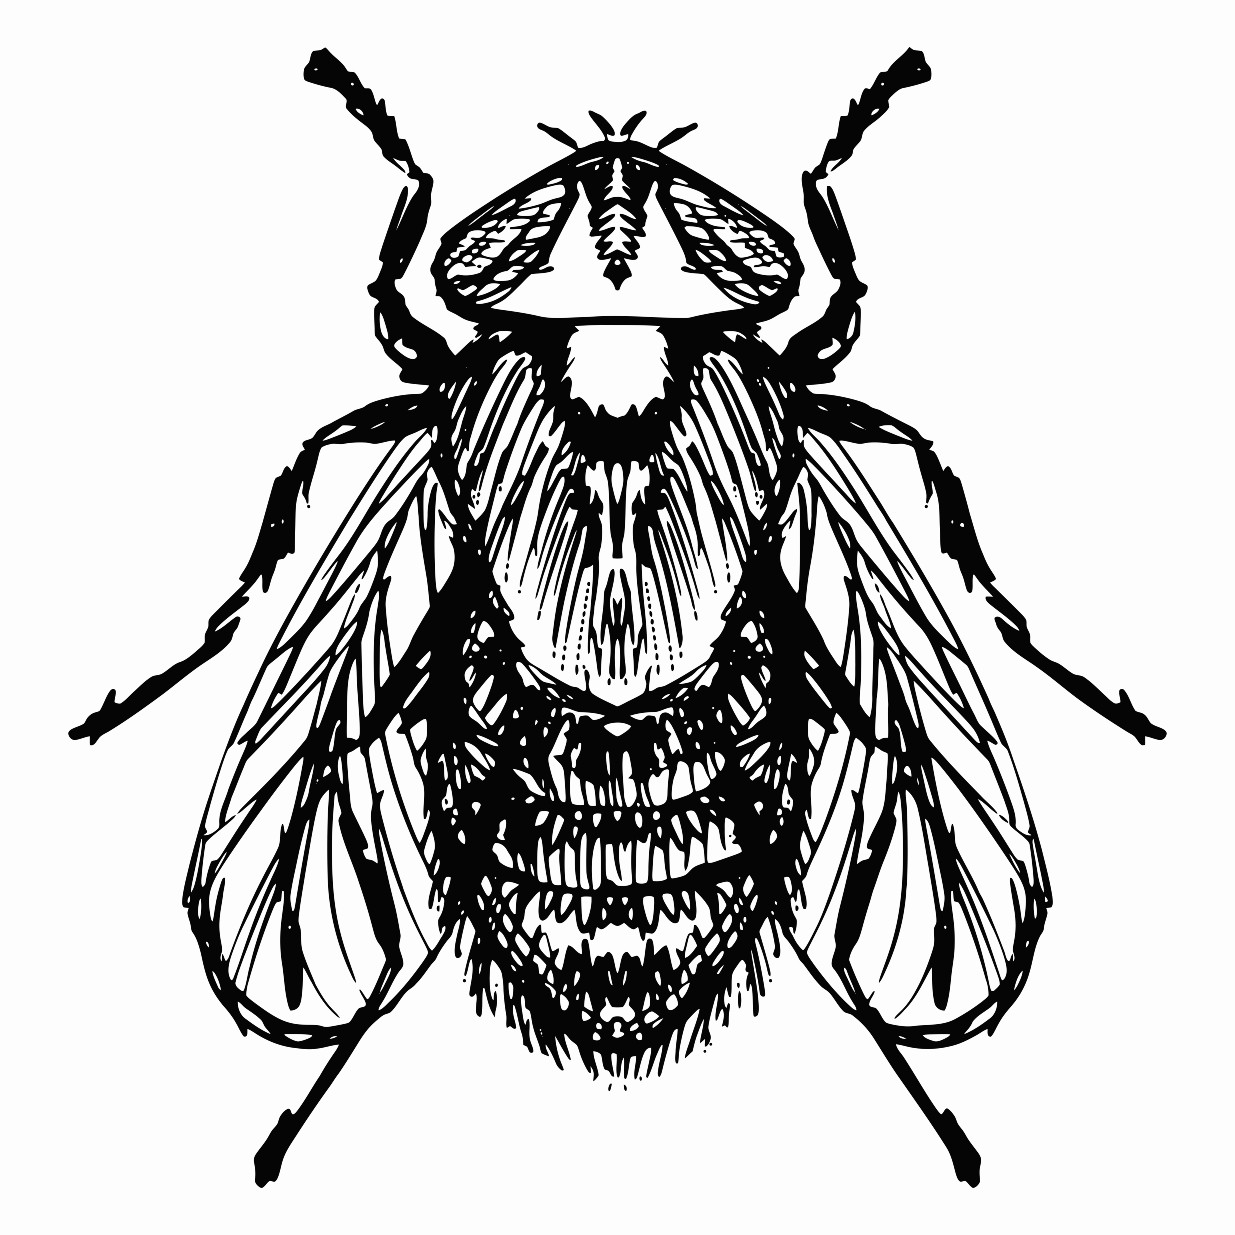 1235x1235 Ordinary Fly Printable Image Illustration Sketch For Ordinary Fly